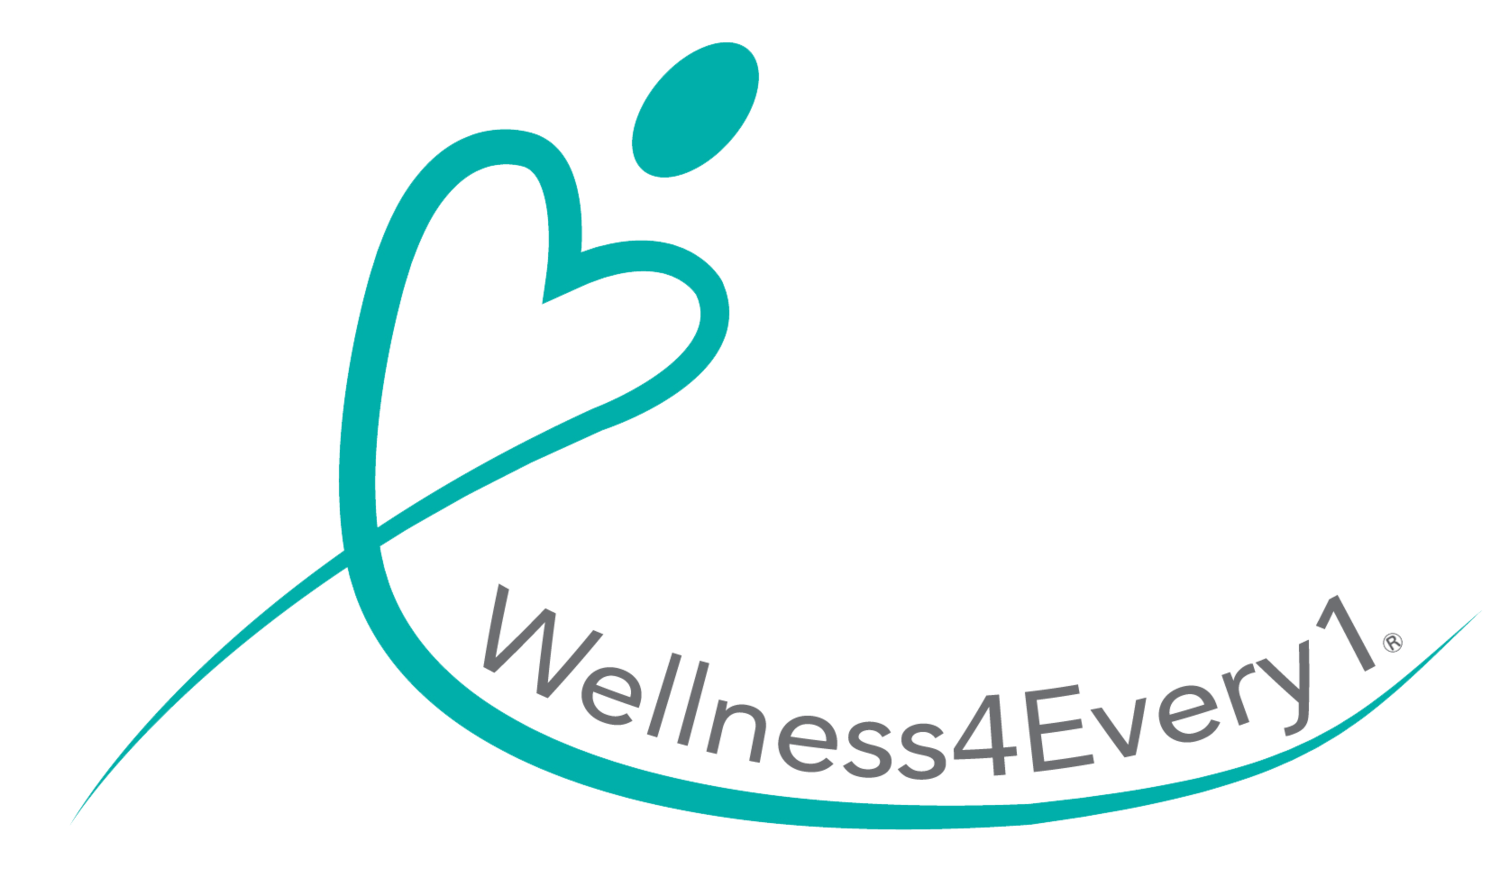 Wellness4Every1®